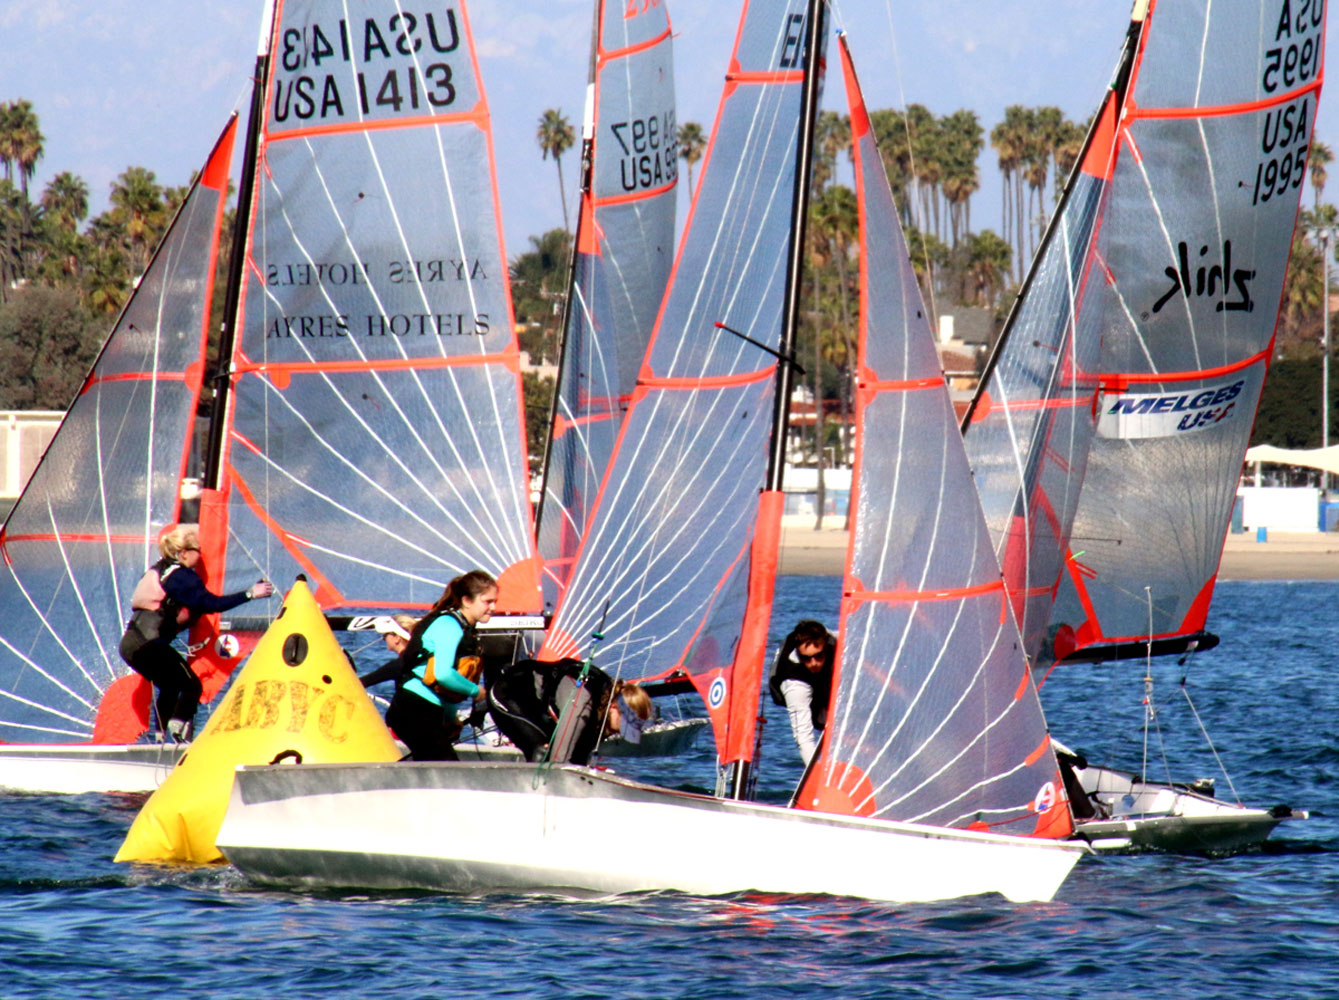 67th Turkey Day Regatta dishes out turkeys, not trophies